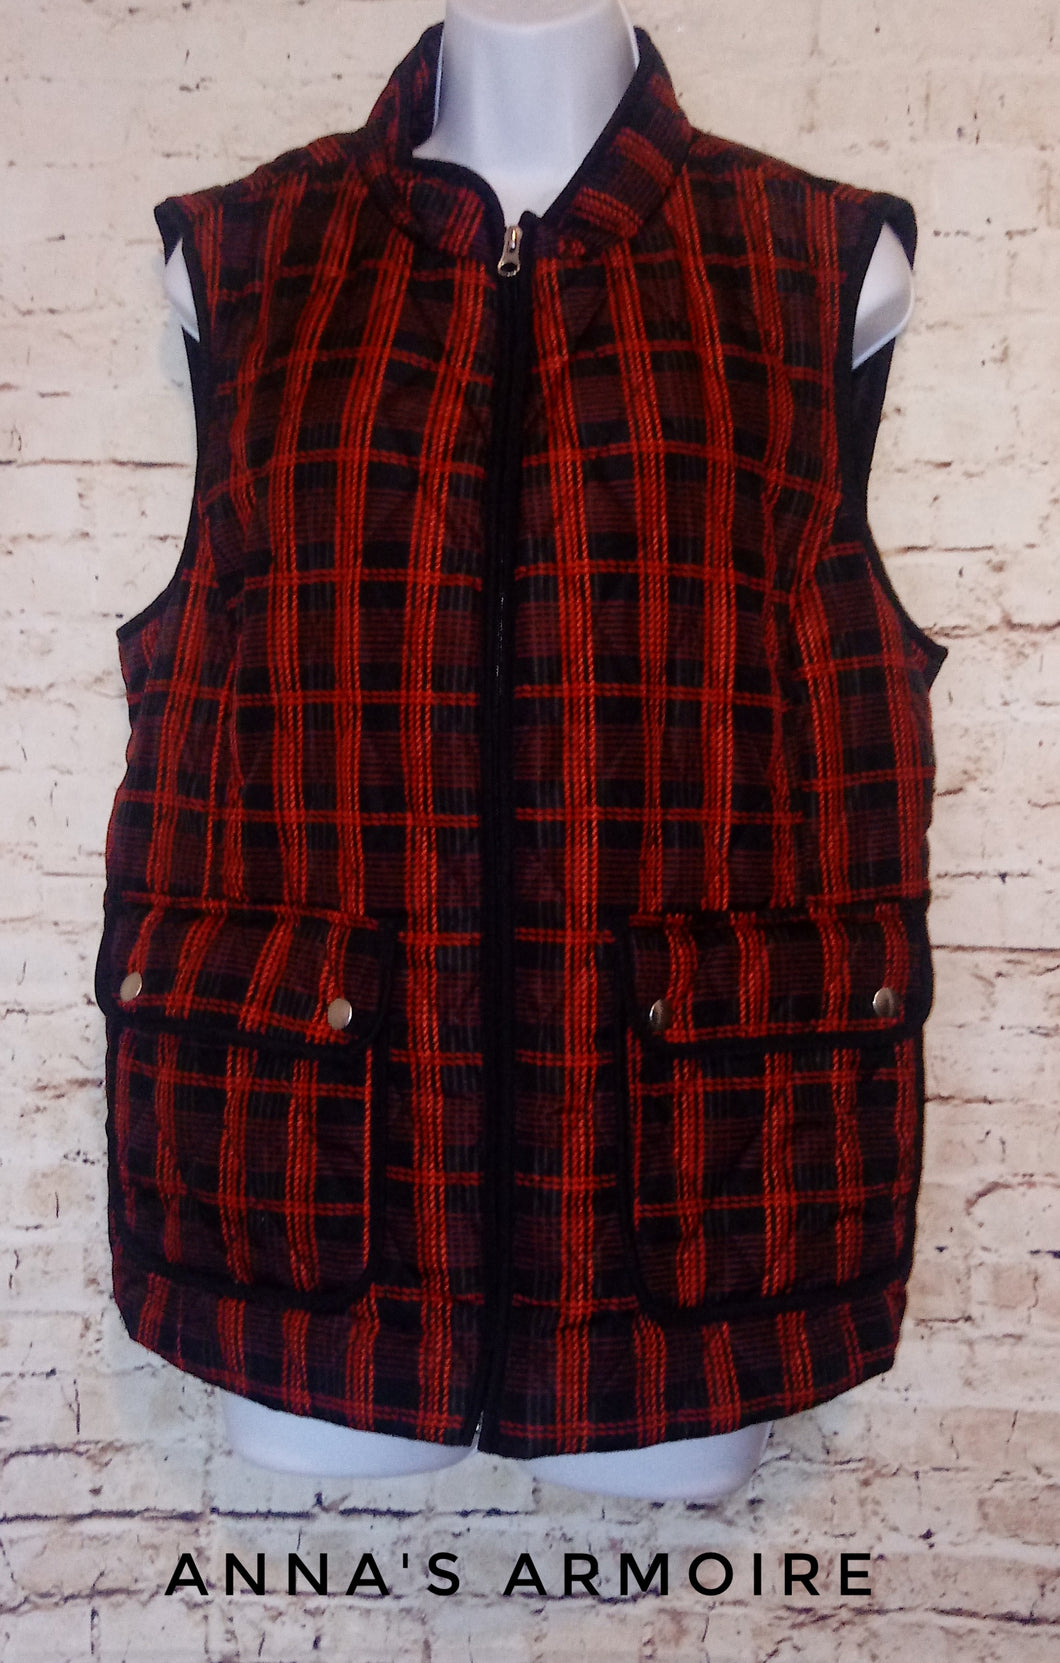 Croft & Barrow Quilted Vest Size L - Anna's Armoire